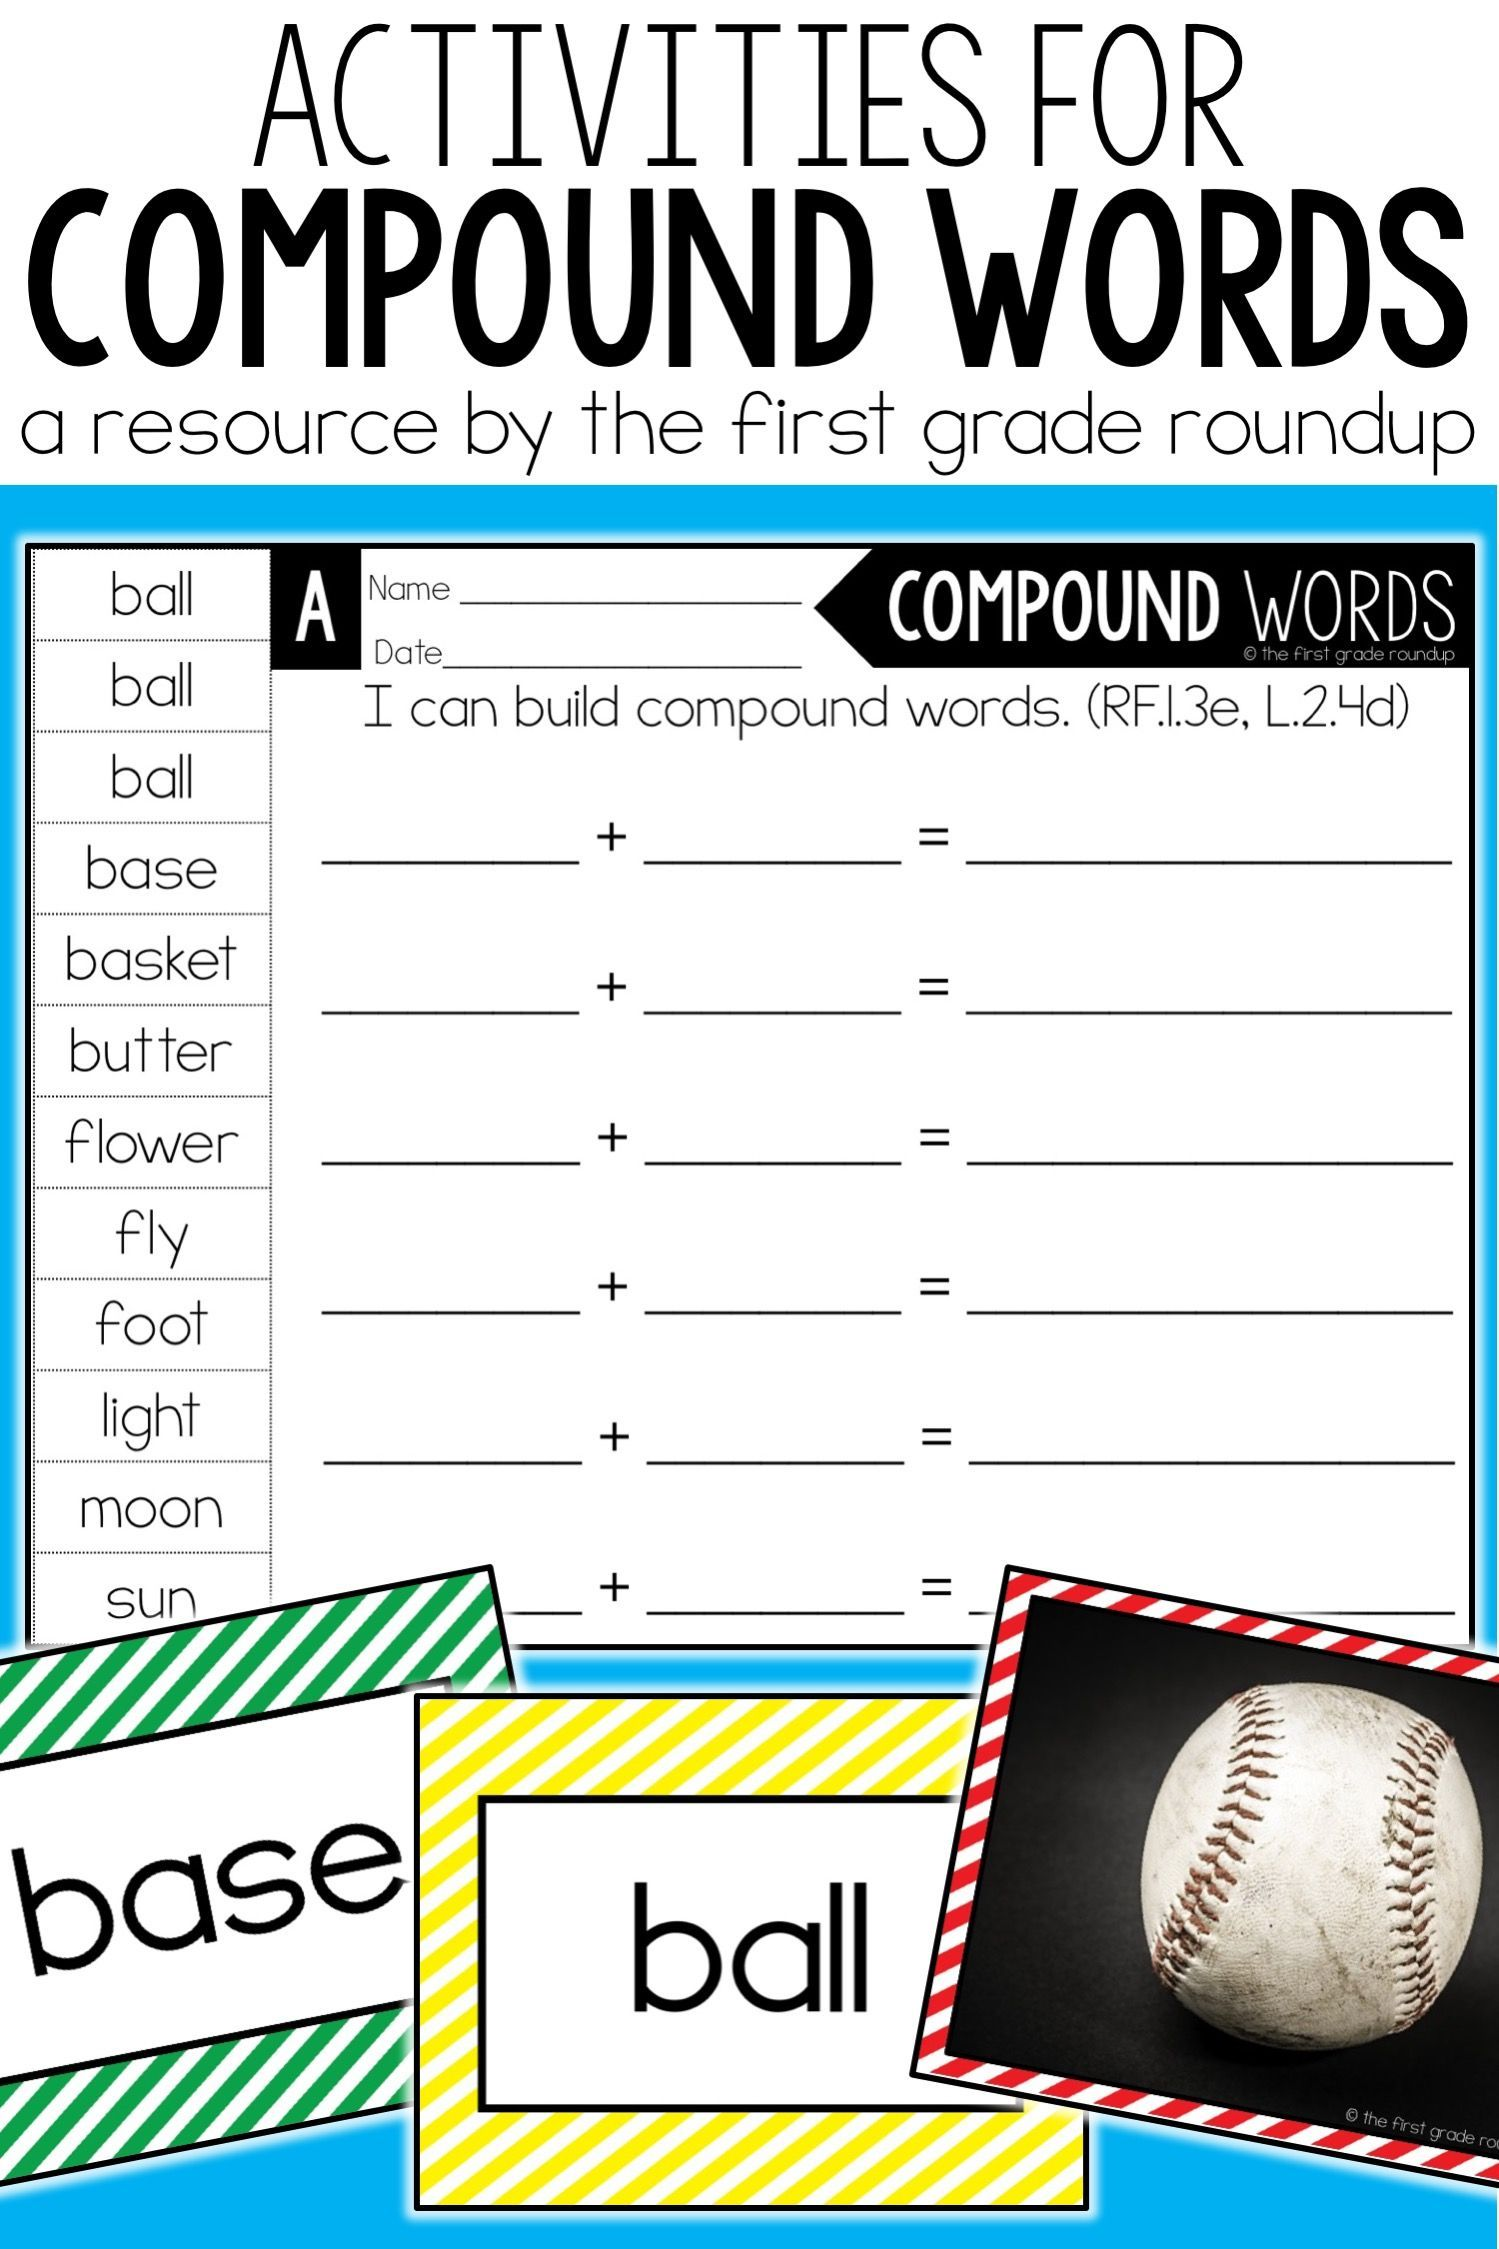 Compound Nouns Print Out A Free Compound Worksheet And Link To Other Noun Resources Compound Words Worksheets Nouns Worksheet Possessive Nouns Worksheets